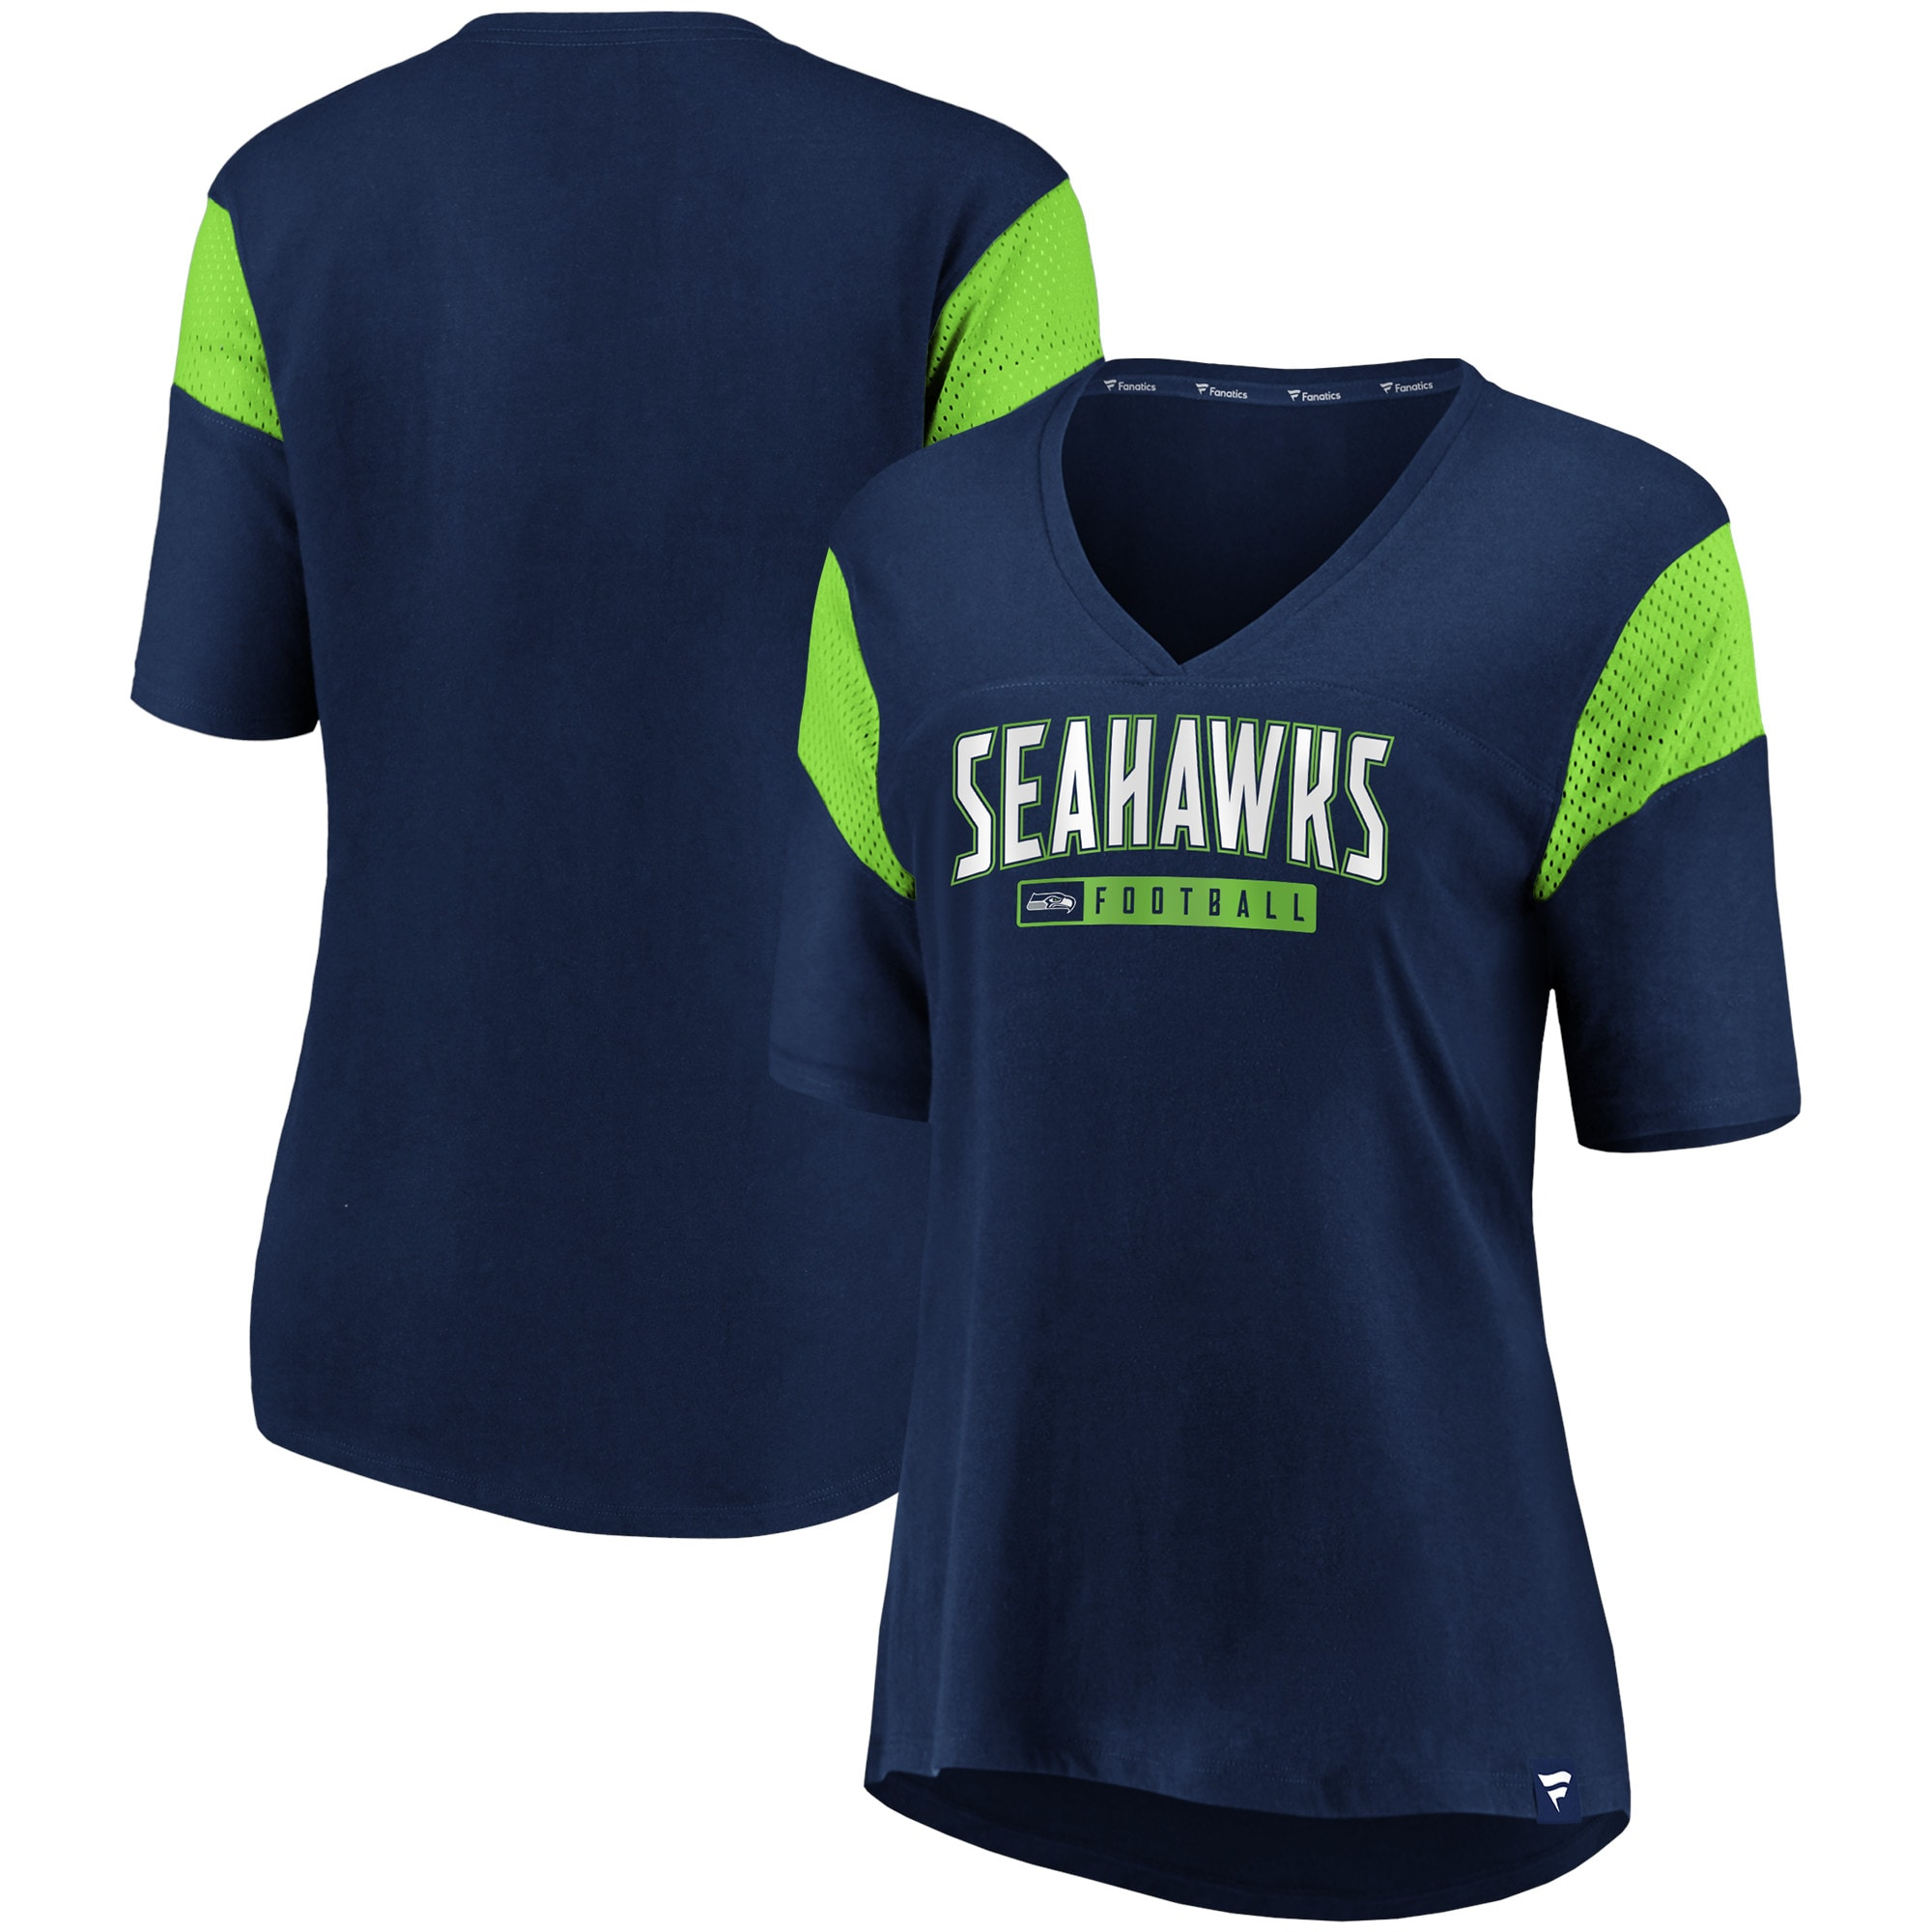 Seattle Seahawks Fanatics Branded Women's Iconic Mesh Piecing V-Neck T-Shirt - College Navy